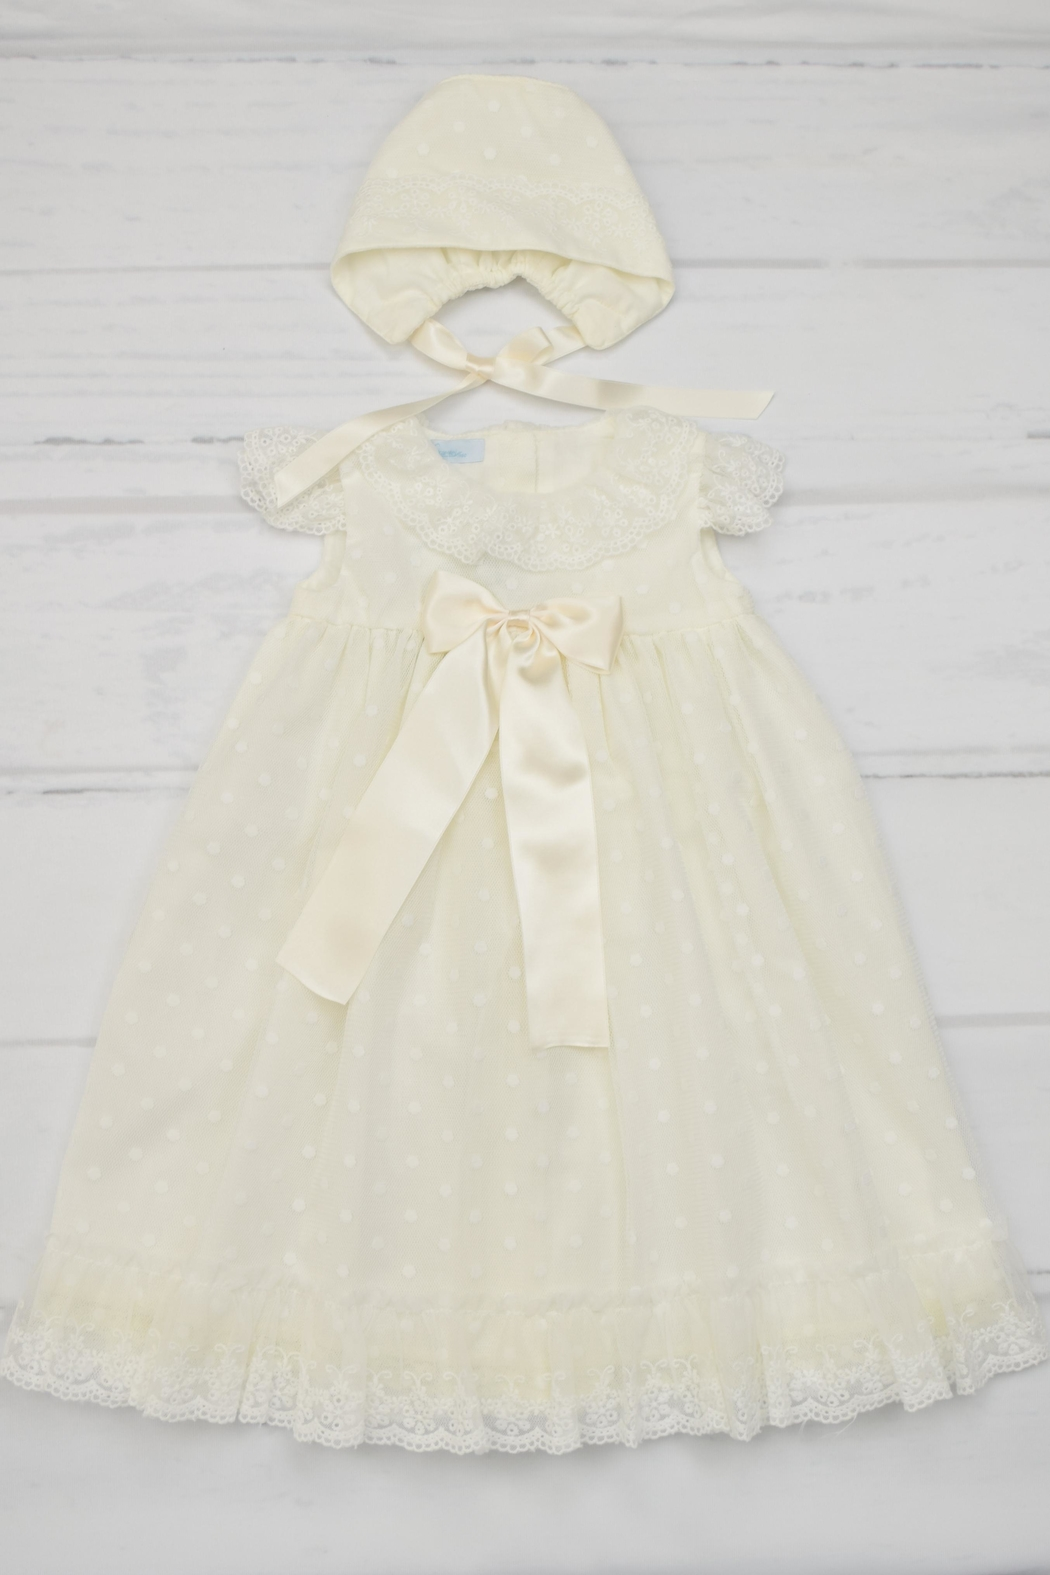 Granlei 1980 Ivory Baptism Gown - Main Image